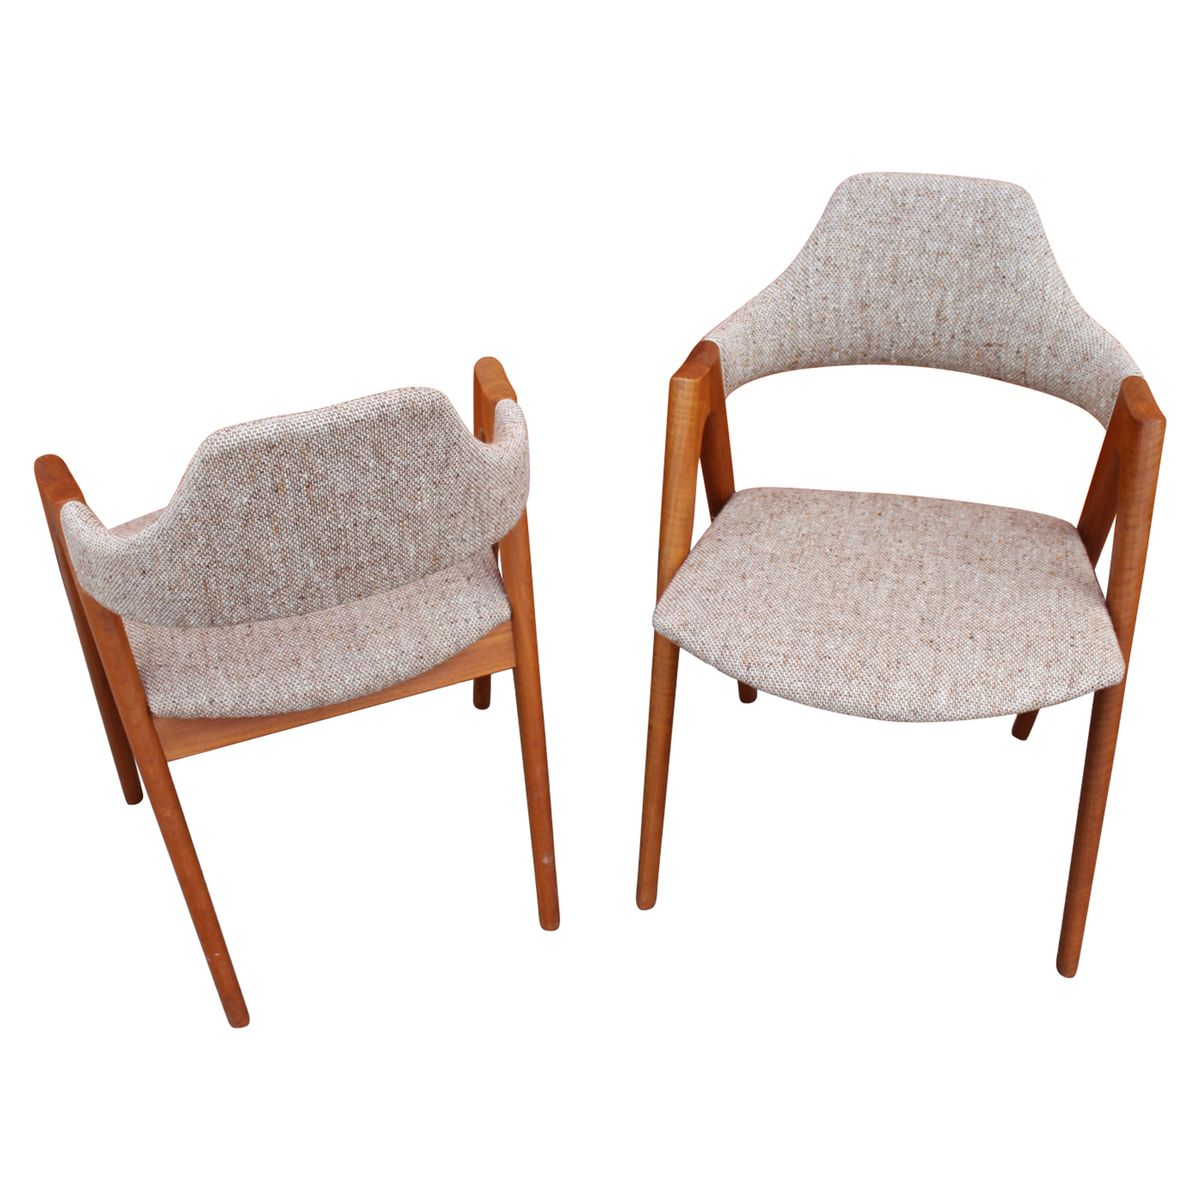 Compass dining chairs by kai kristiansen for schou andersen 1960s set of 6 for sale at pamono - Kai kristiansen chairs ...